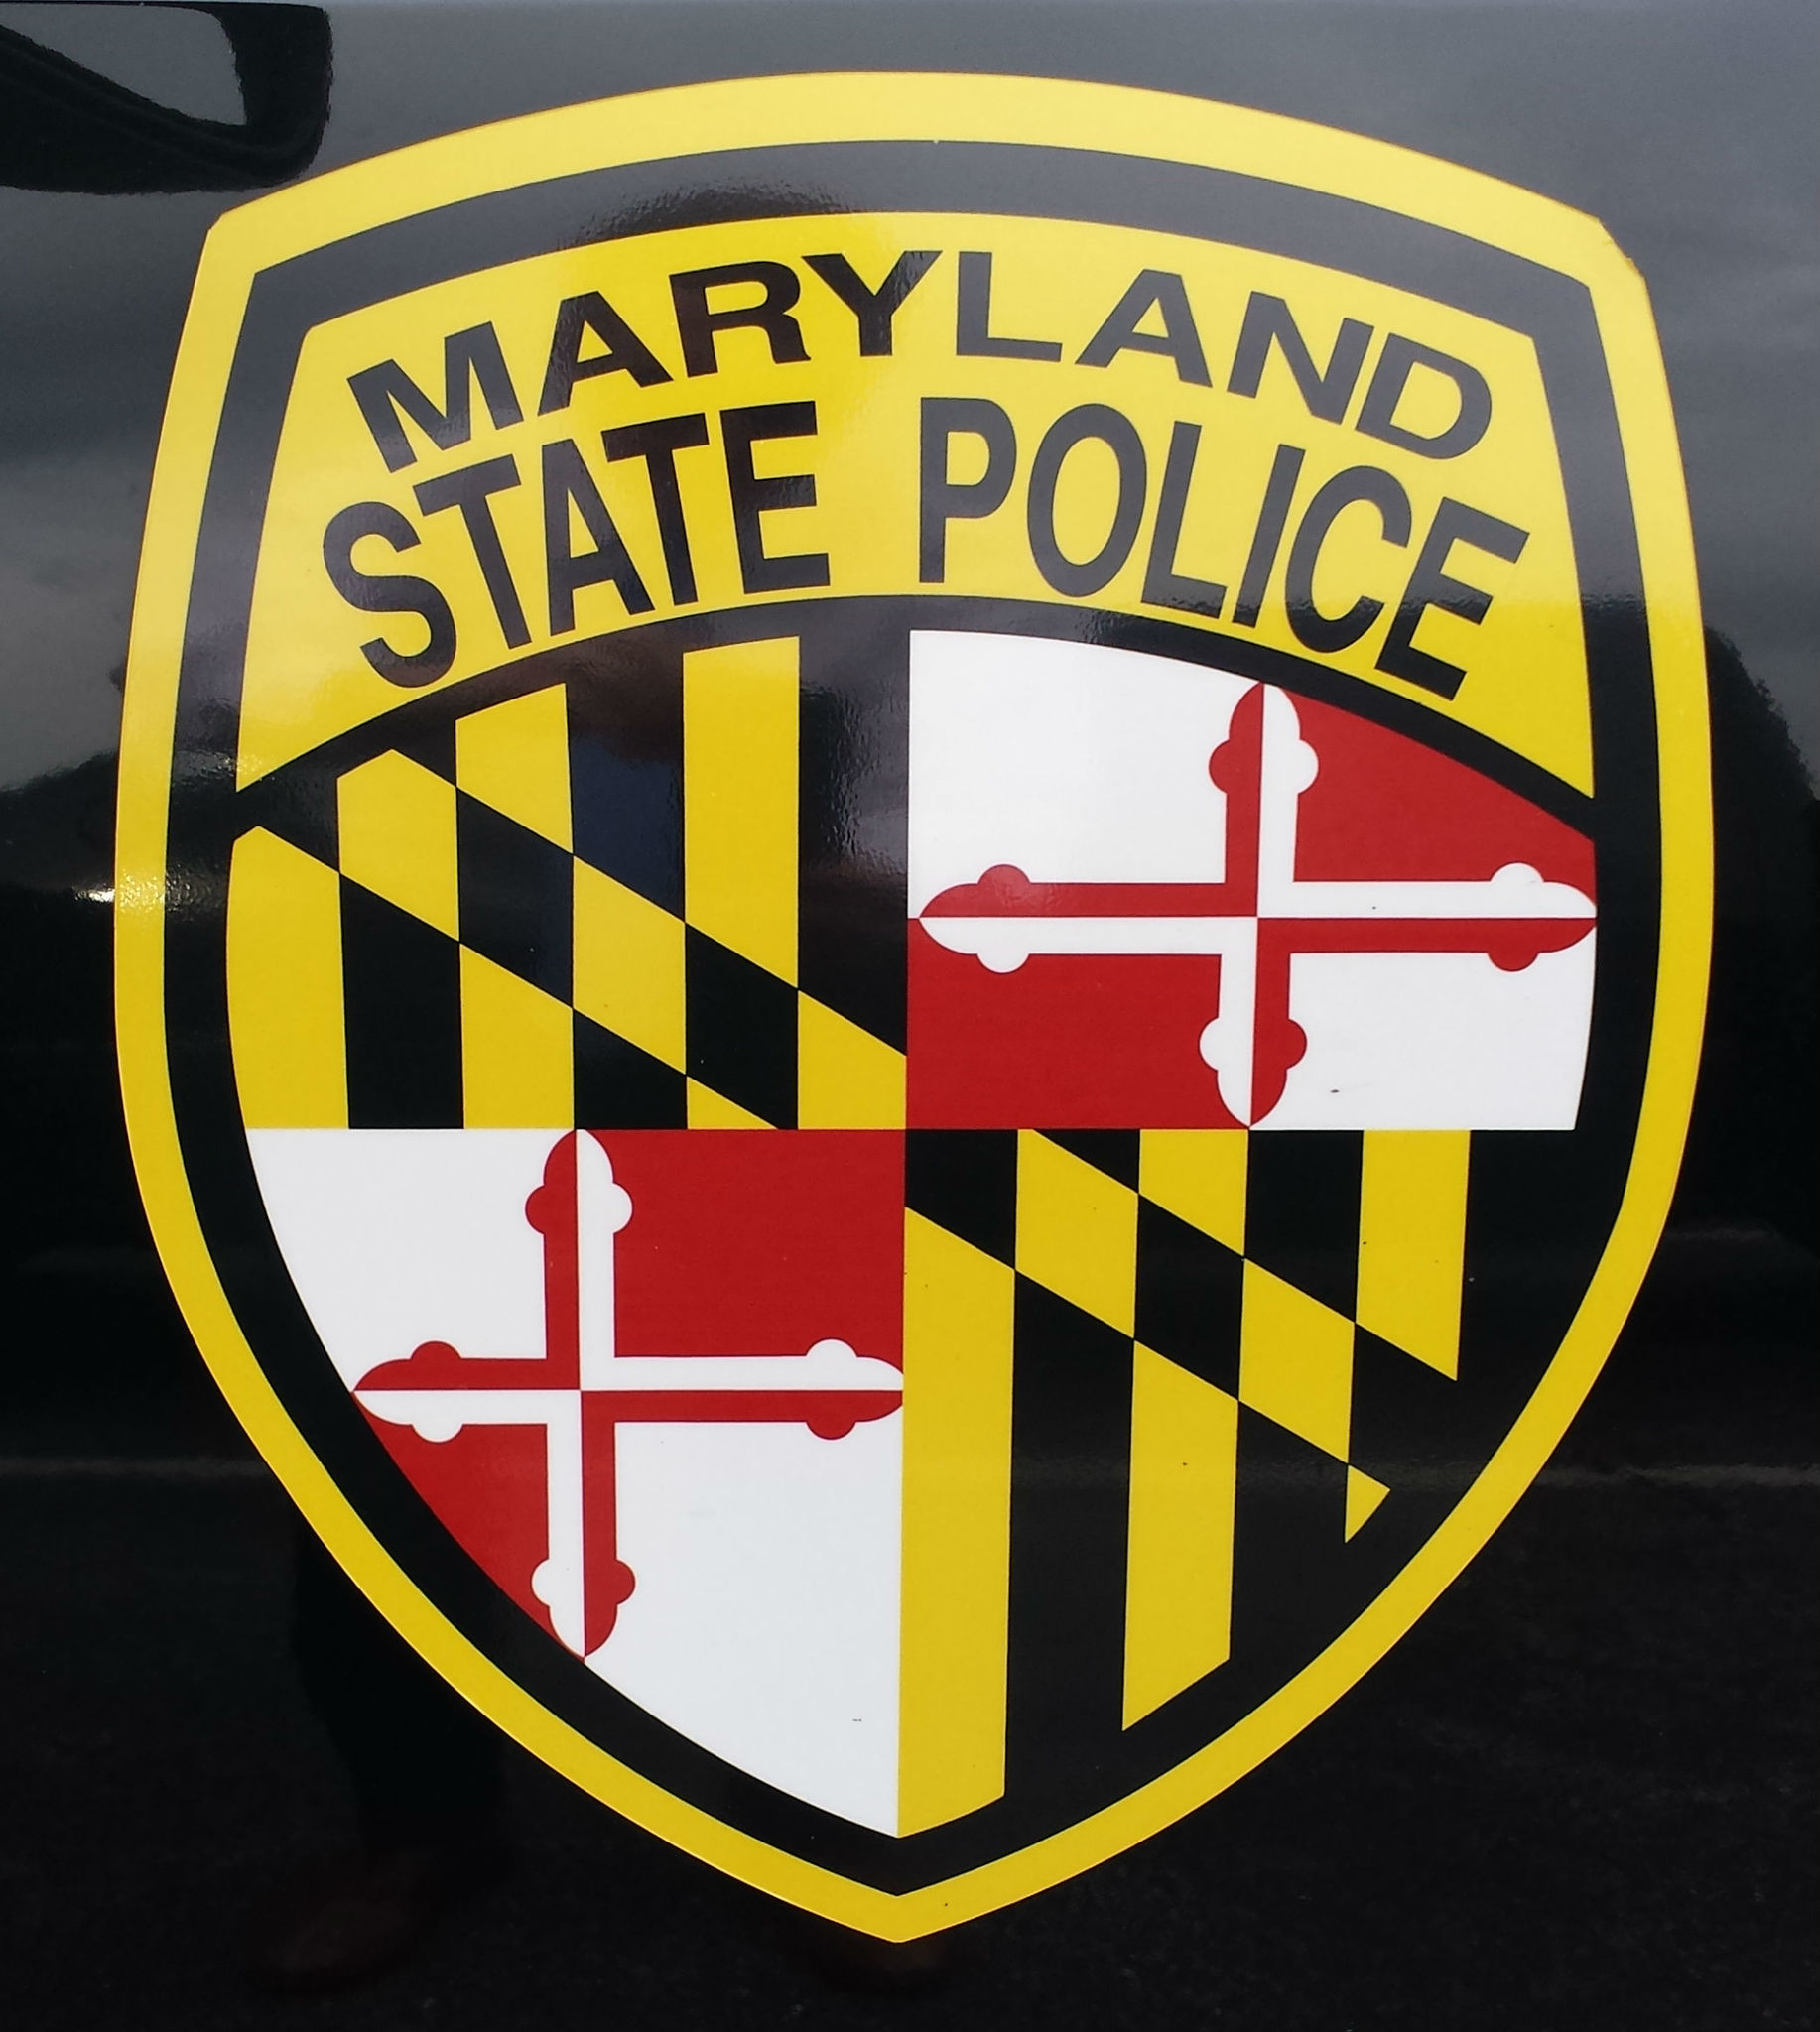 Westminster Man Charged After Car Collides With Ambulance